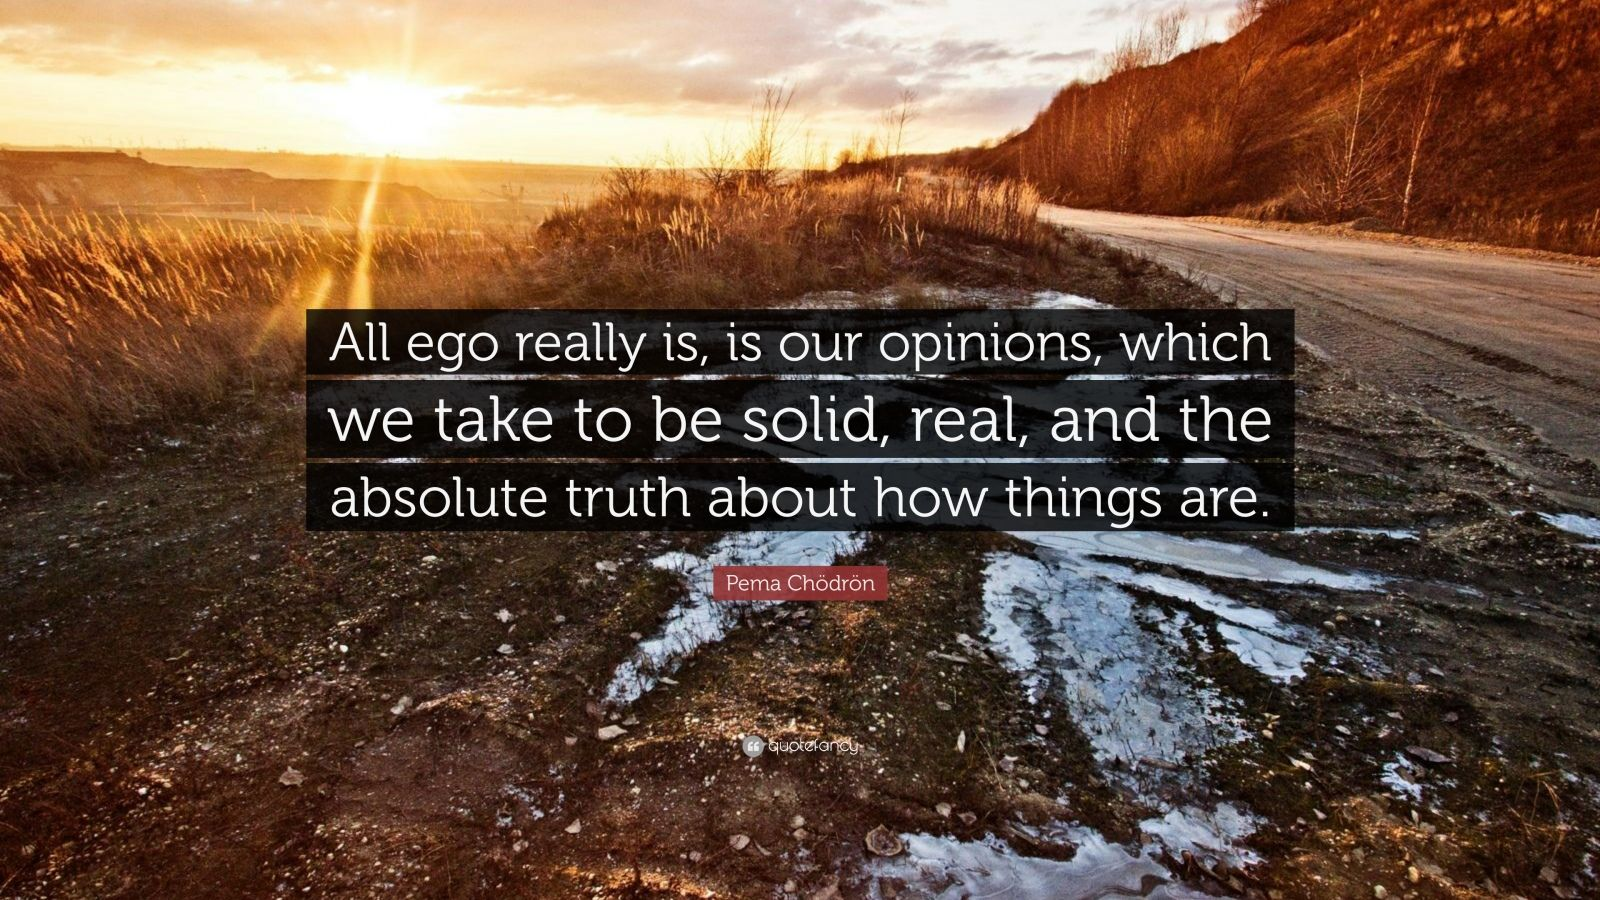 """Pema Chödrön Quote: """"All ego really is, is our opinions, which we take to be solid, real, and the absolute truth about how things are."""""""